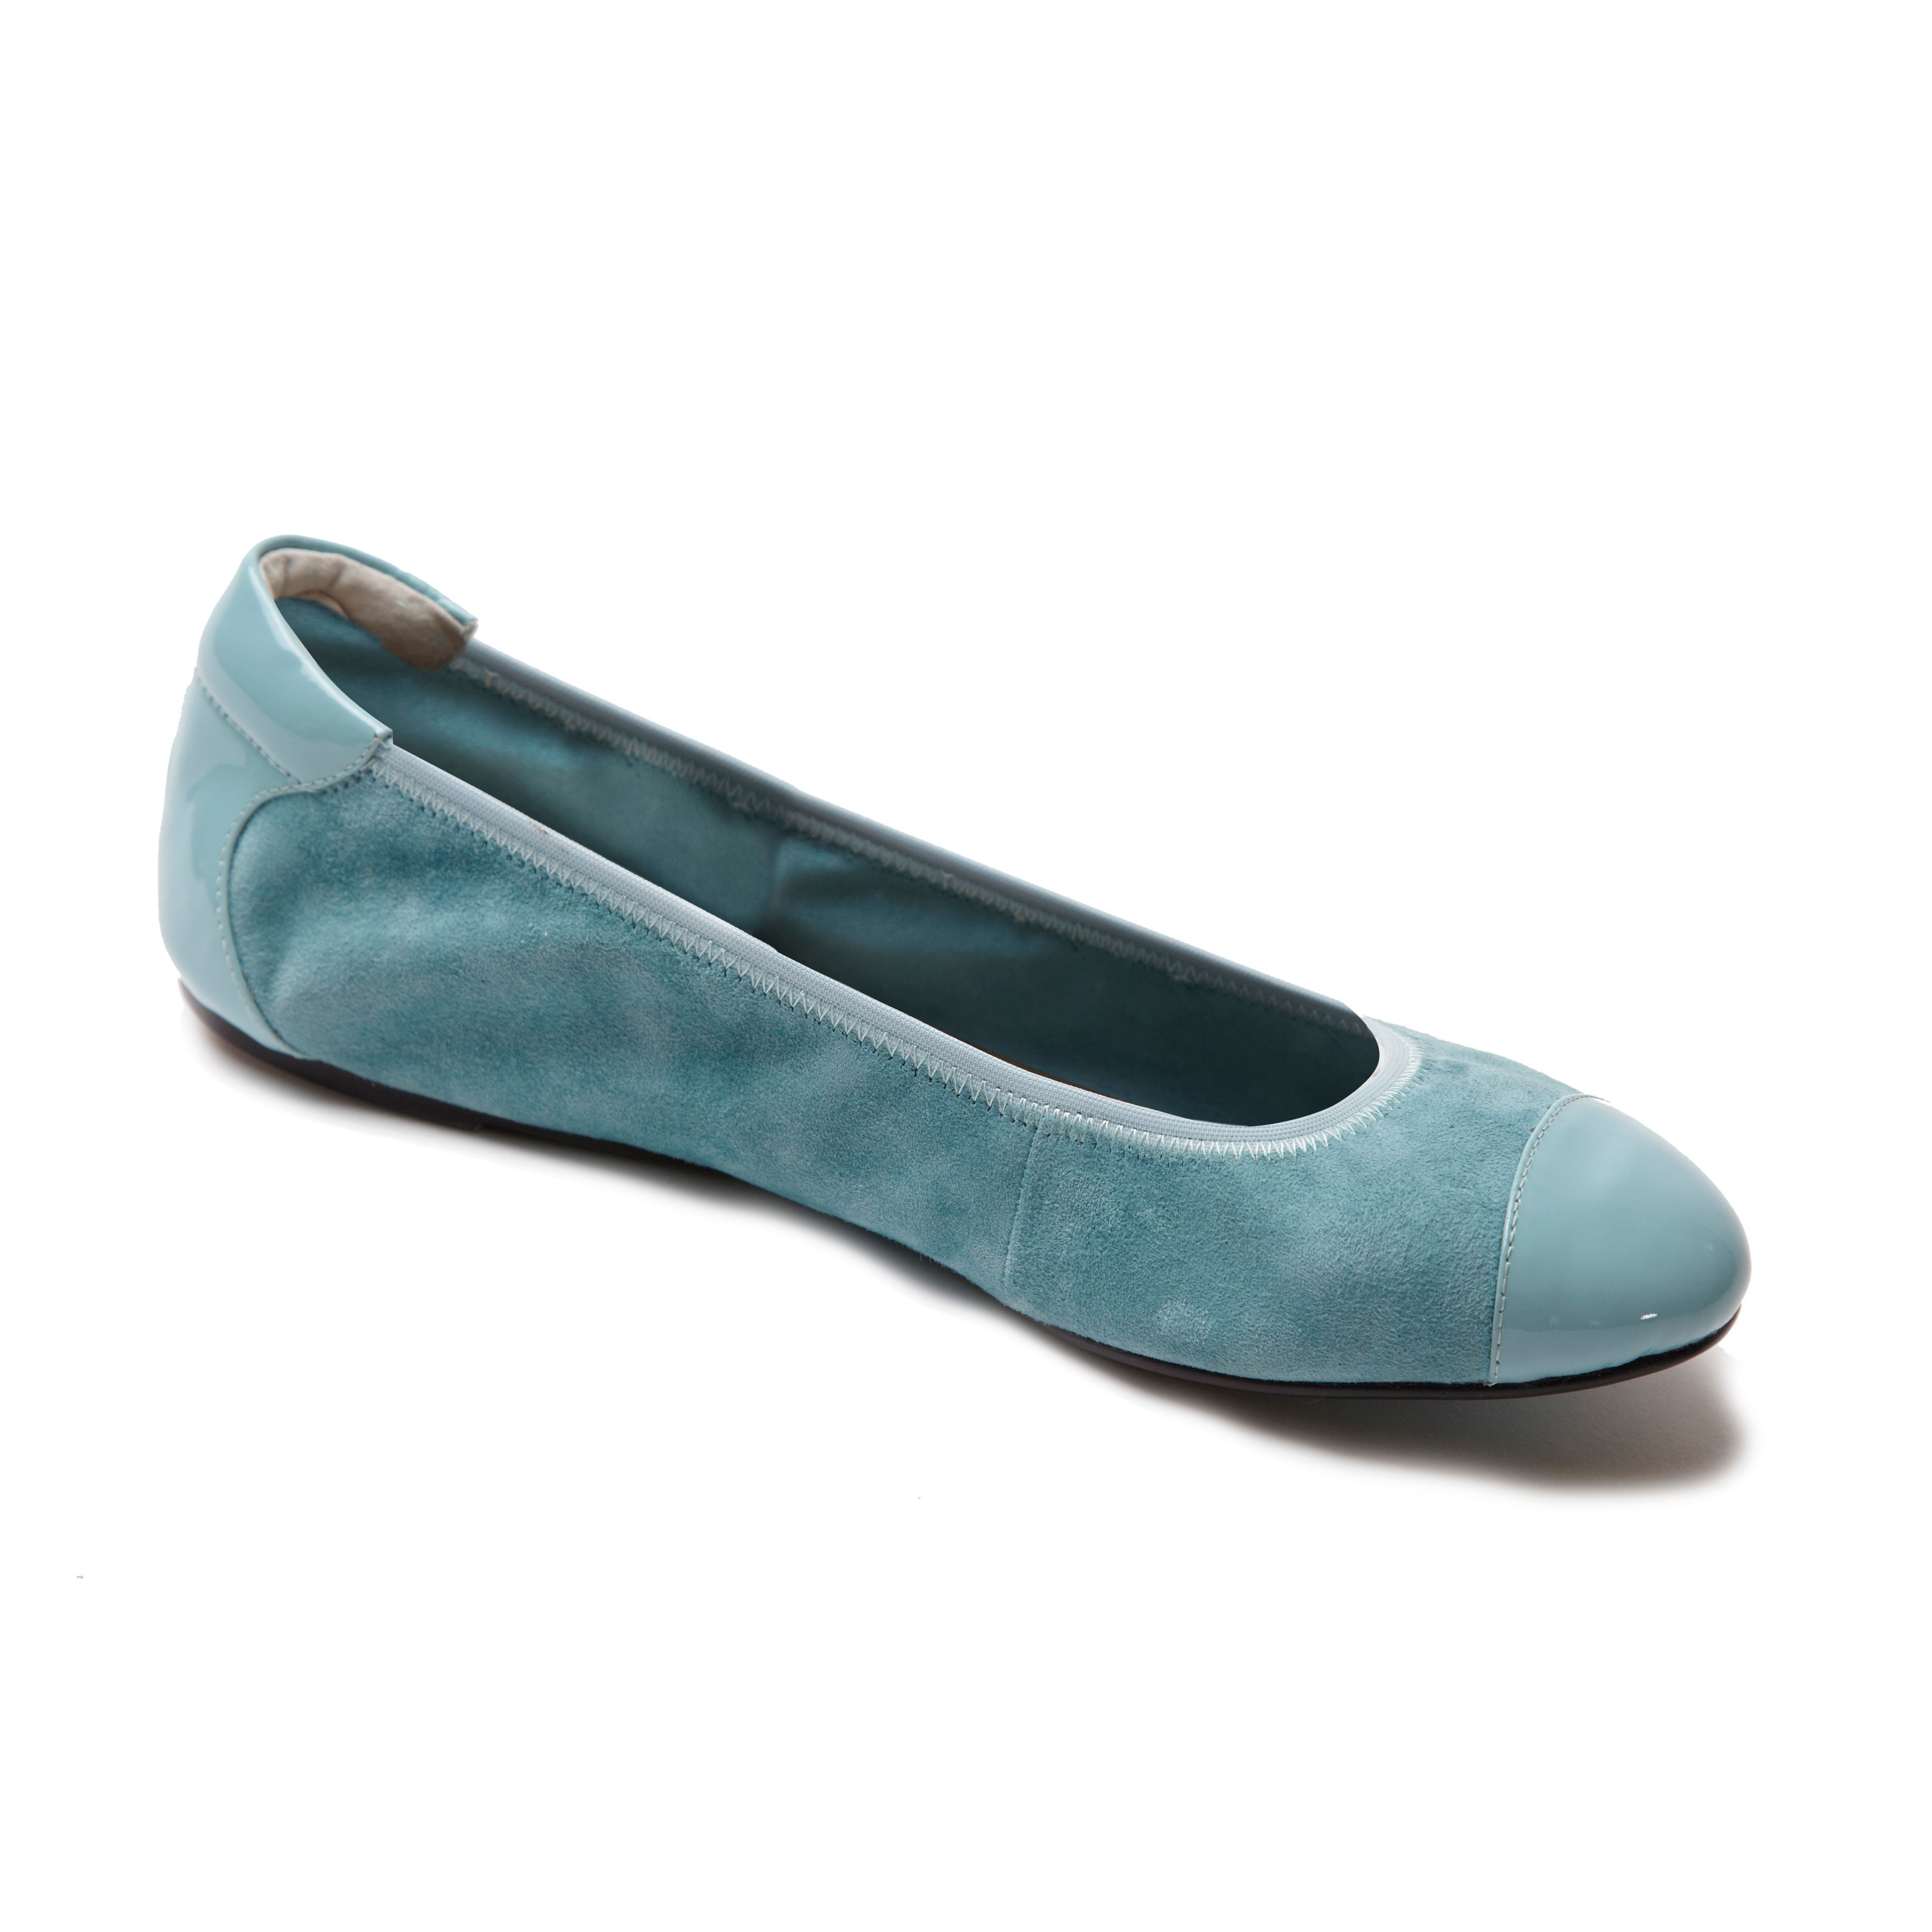 Harrow blue leather foldable ballerina